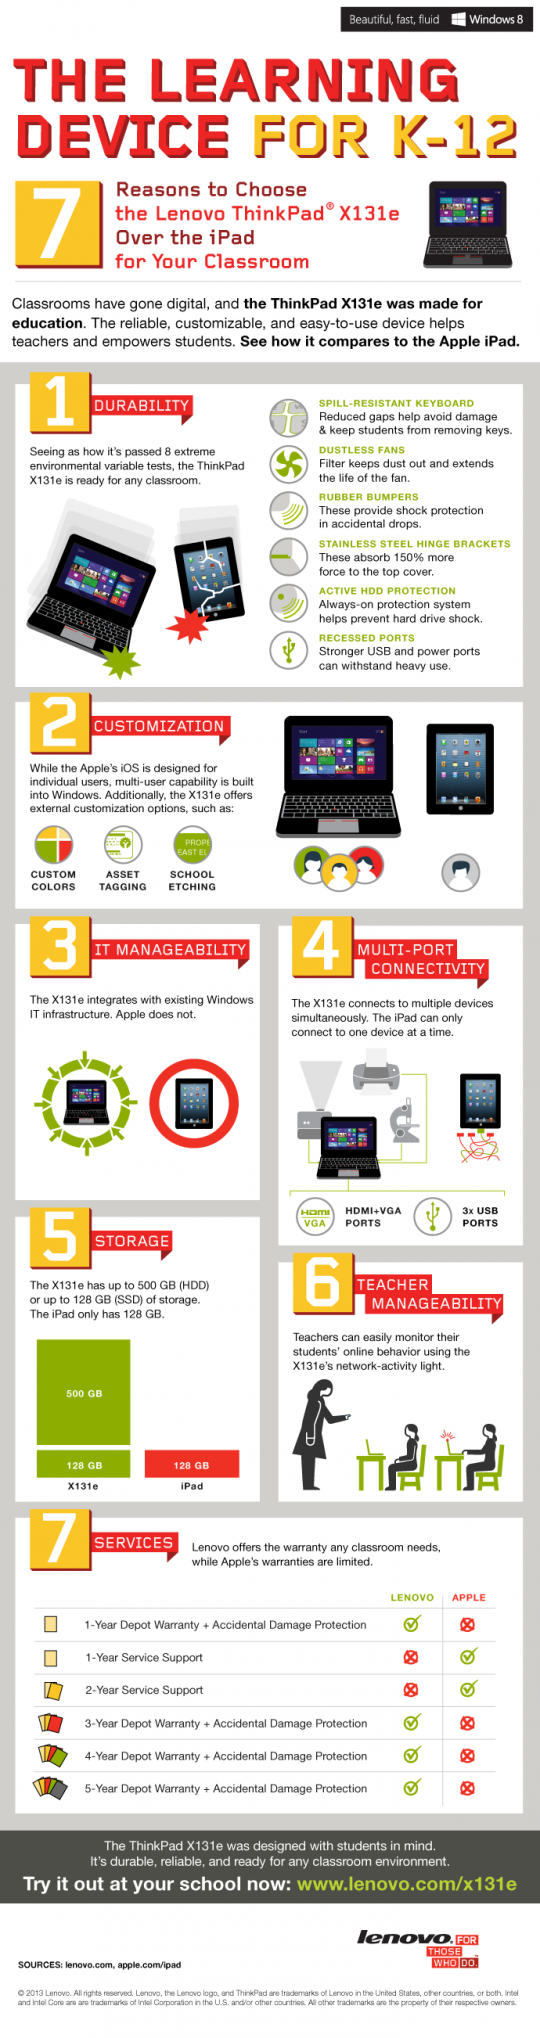 The learning device for the classroom [infographic]